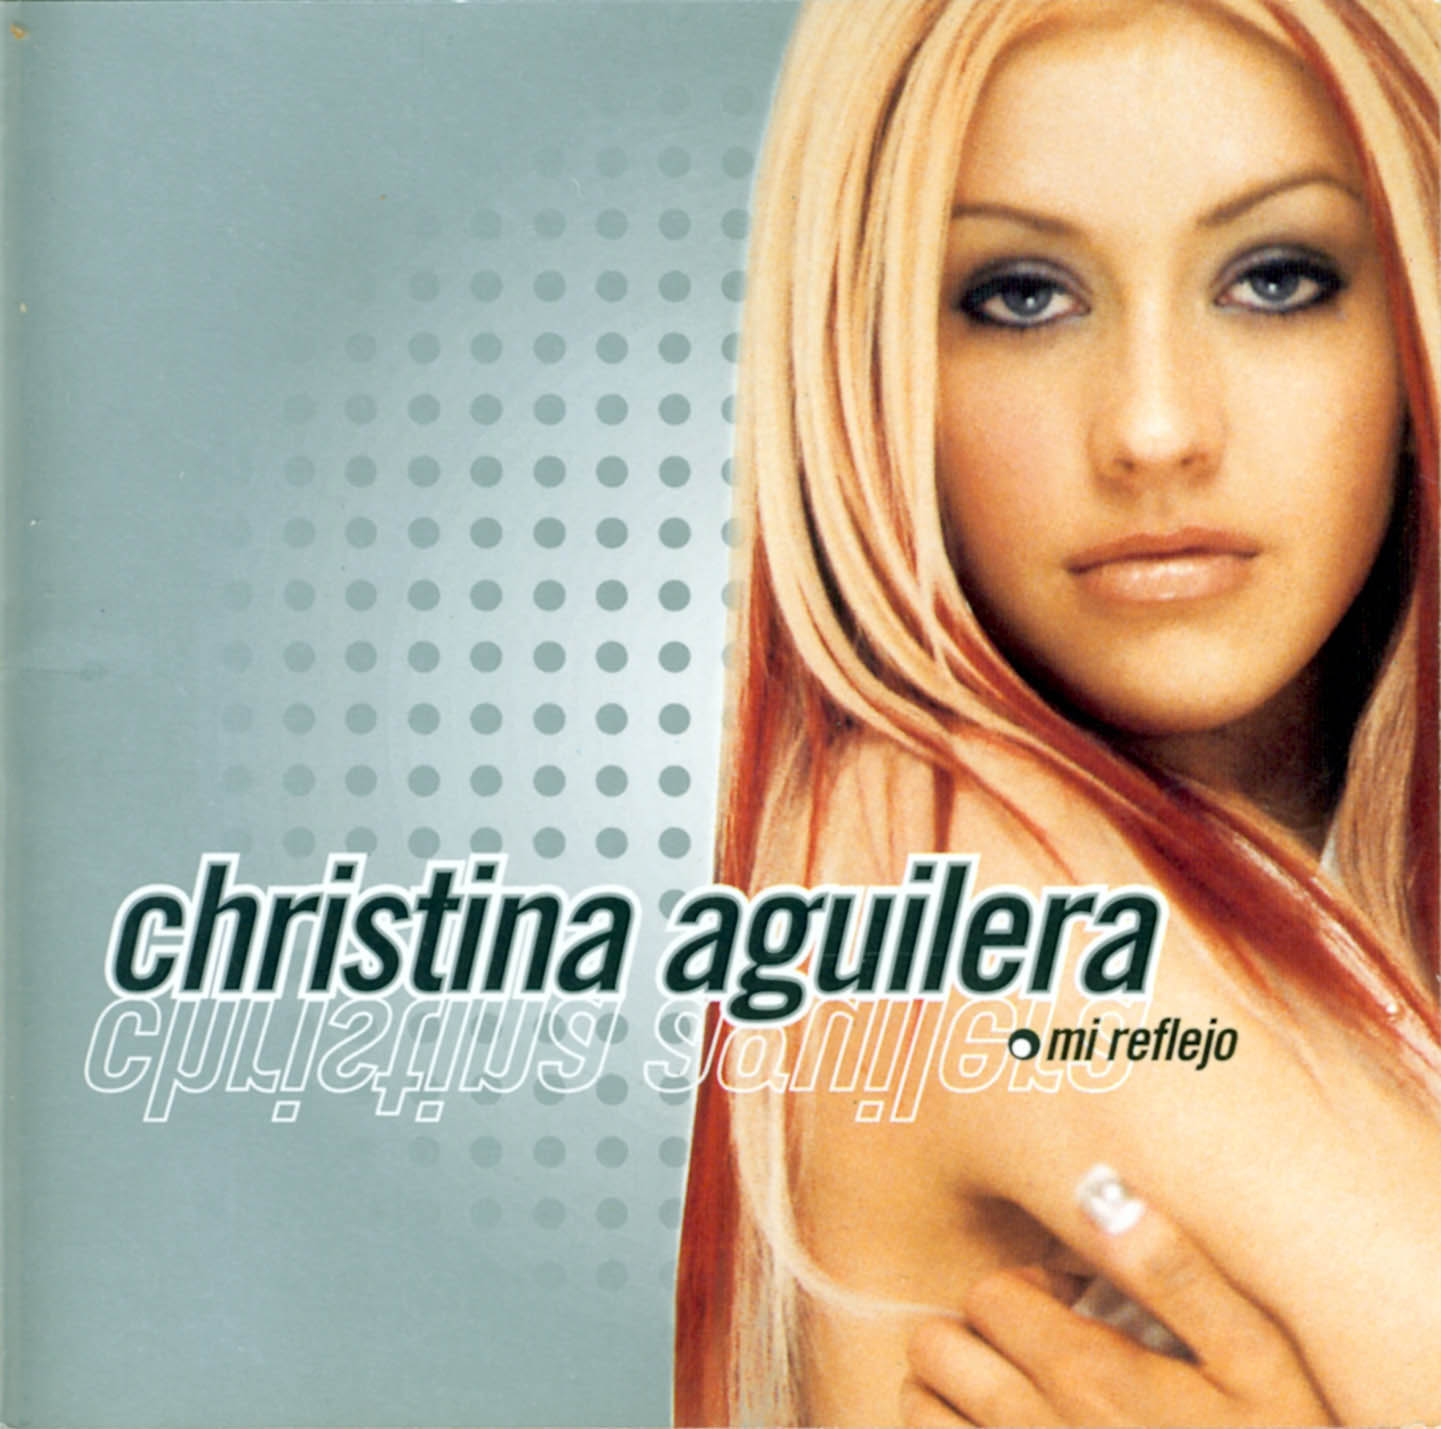 CHRISTINA AGUILERA DISCOGRAFIA MP3